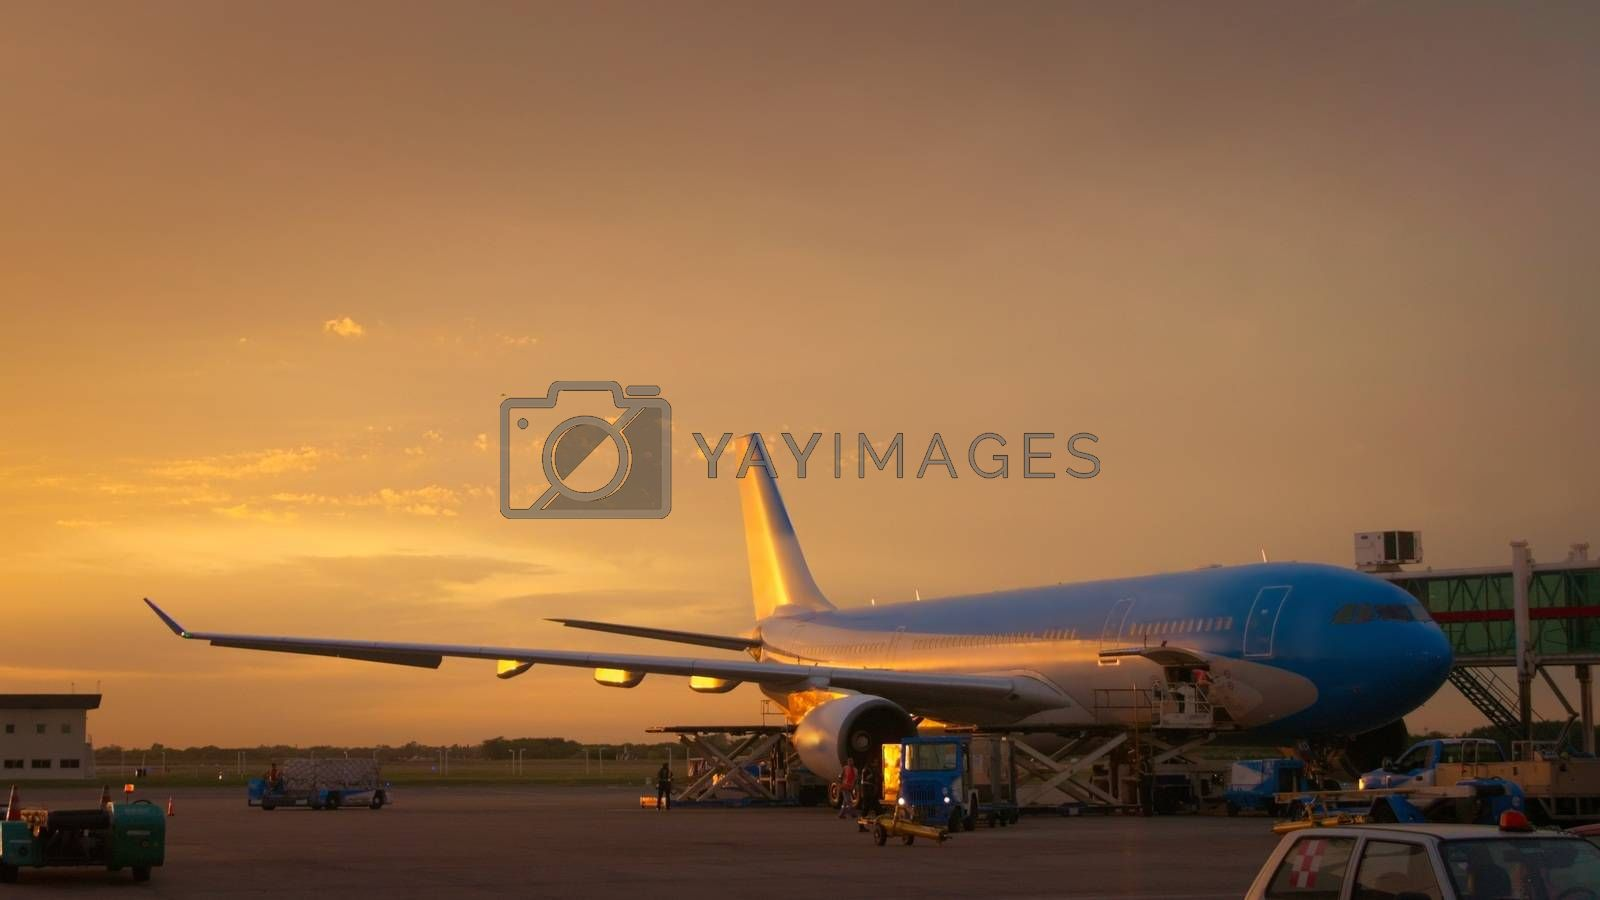 Royalty free image of Airport ground crew loading cargo and luggage on a commercial aircraft at dawn. by hernan_hyper